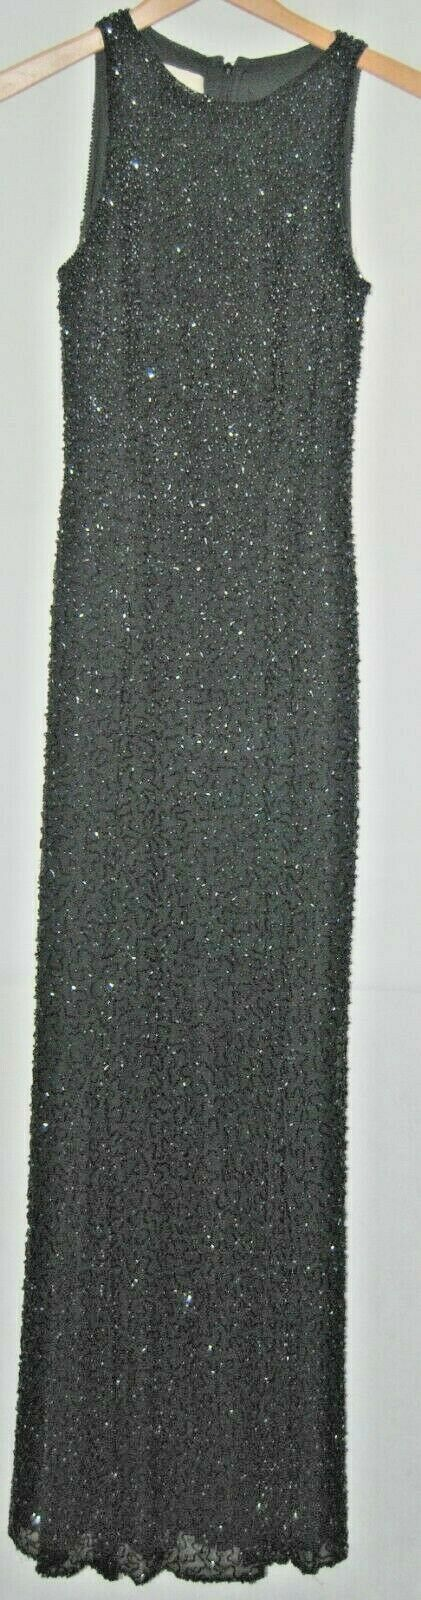 Vintage Cache Heavy Crystal Beaded schwarz Gown Cocktail Dress Sleeveless Silk XS